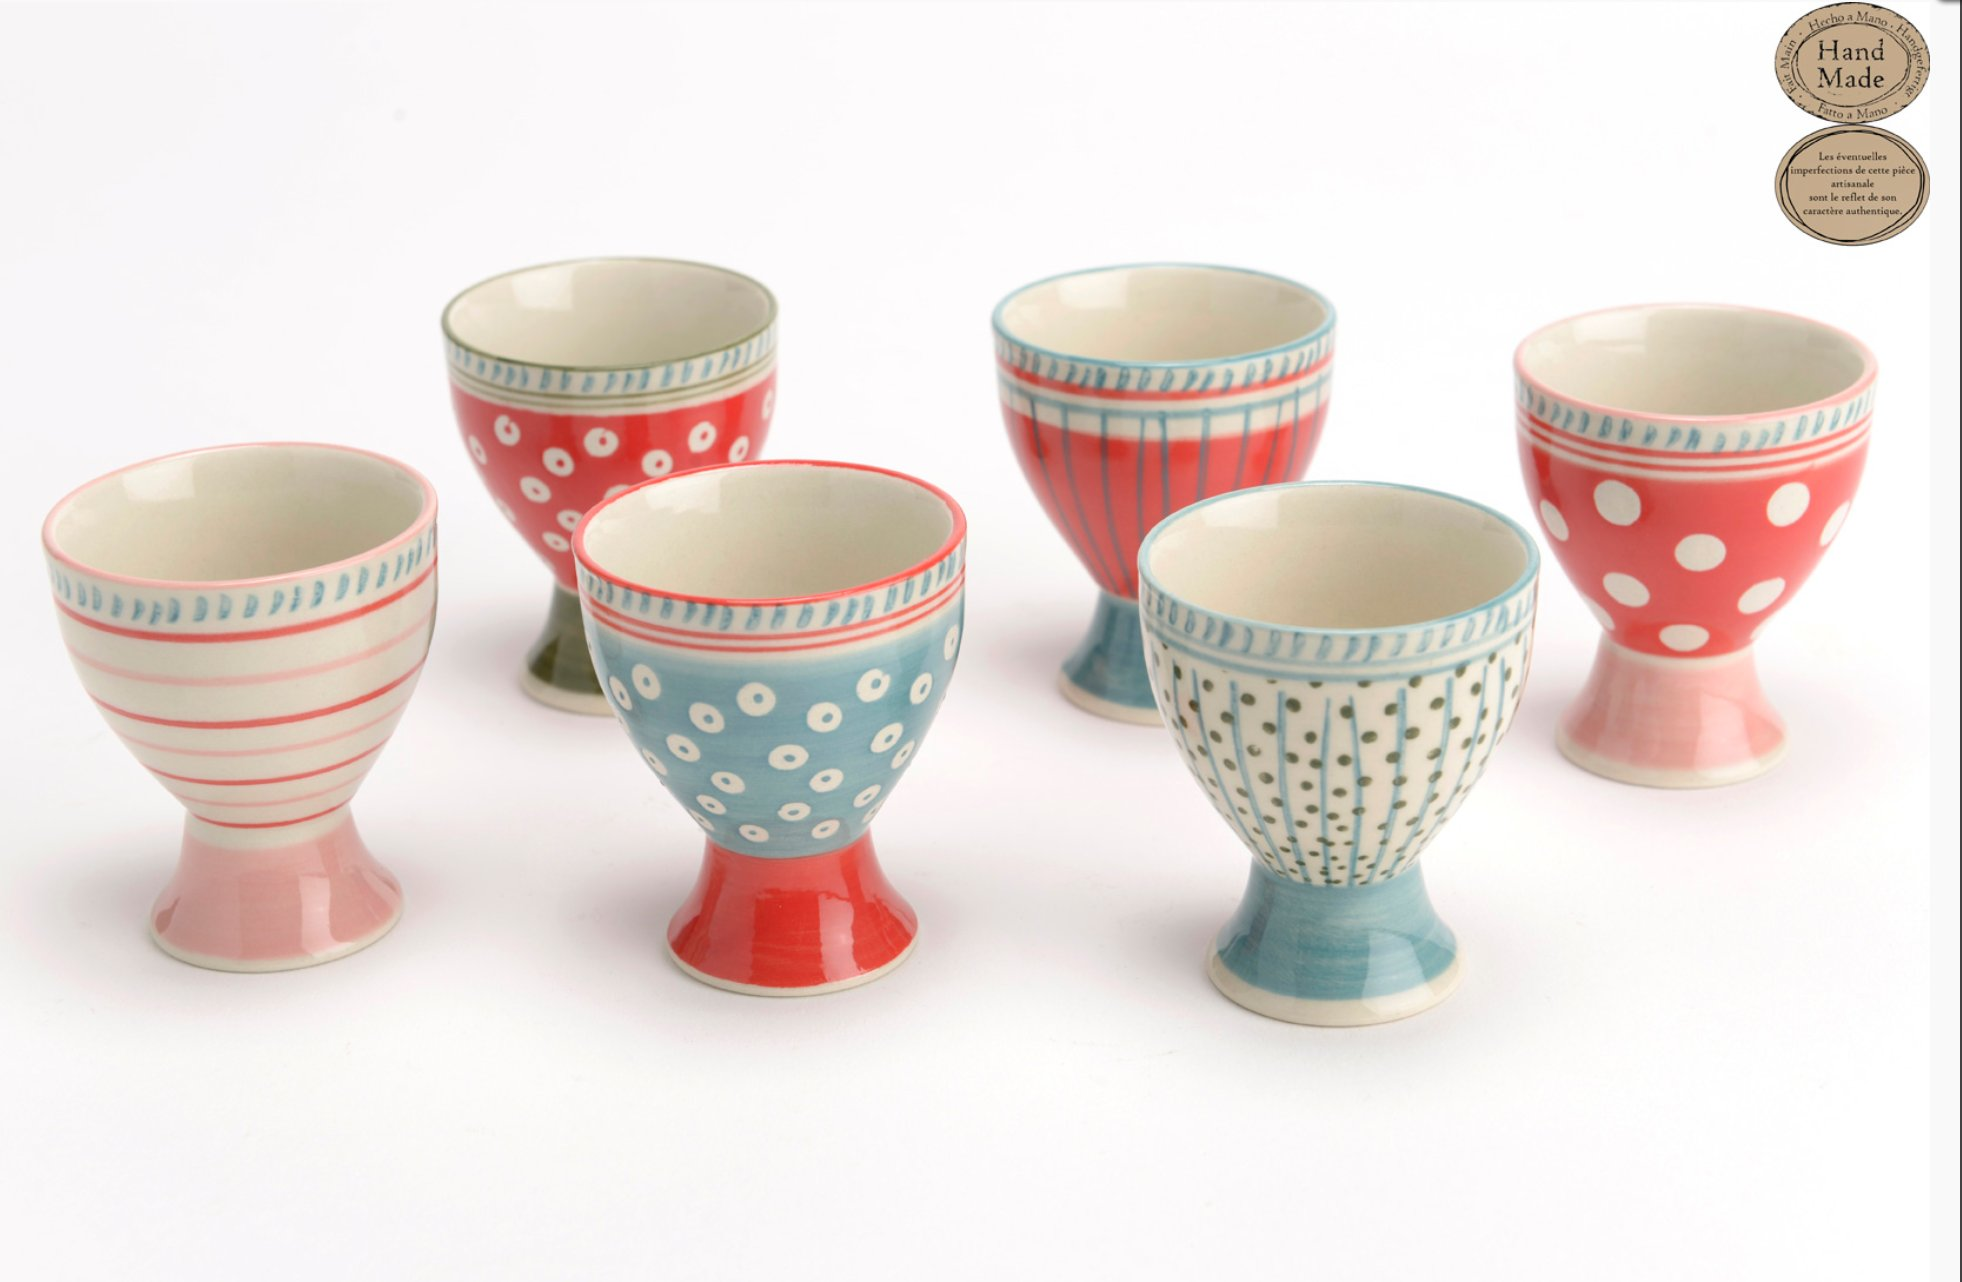 131509 Hand Painted Ceramic Egg Cup Holders, Set/6 Assorted Styles